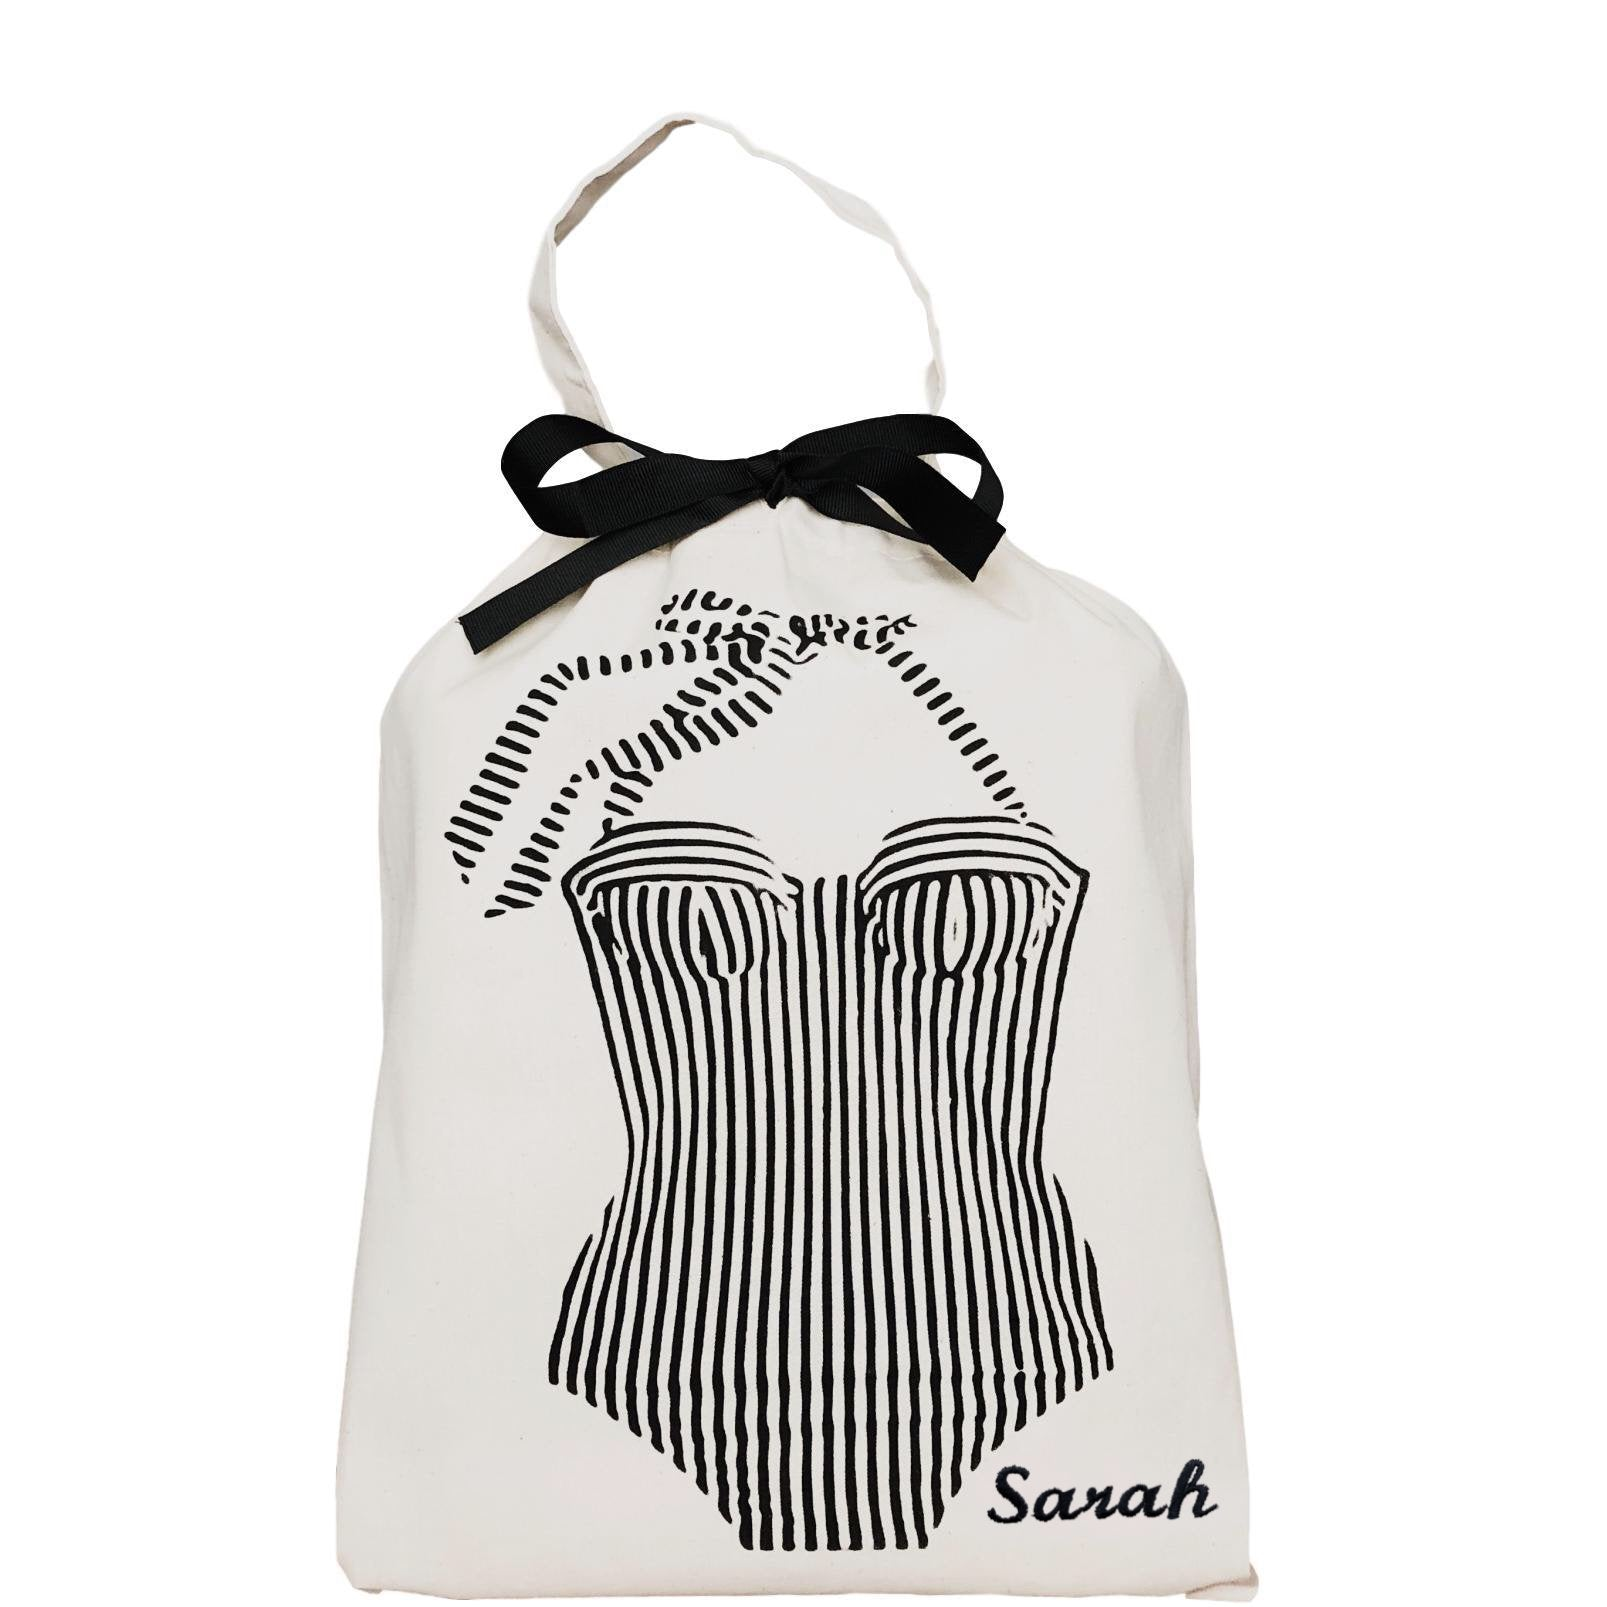 Bretagne Swimsuit Bag - Bag-all France